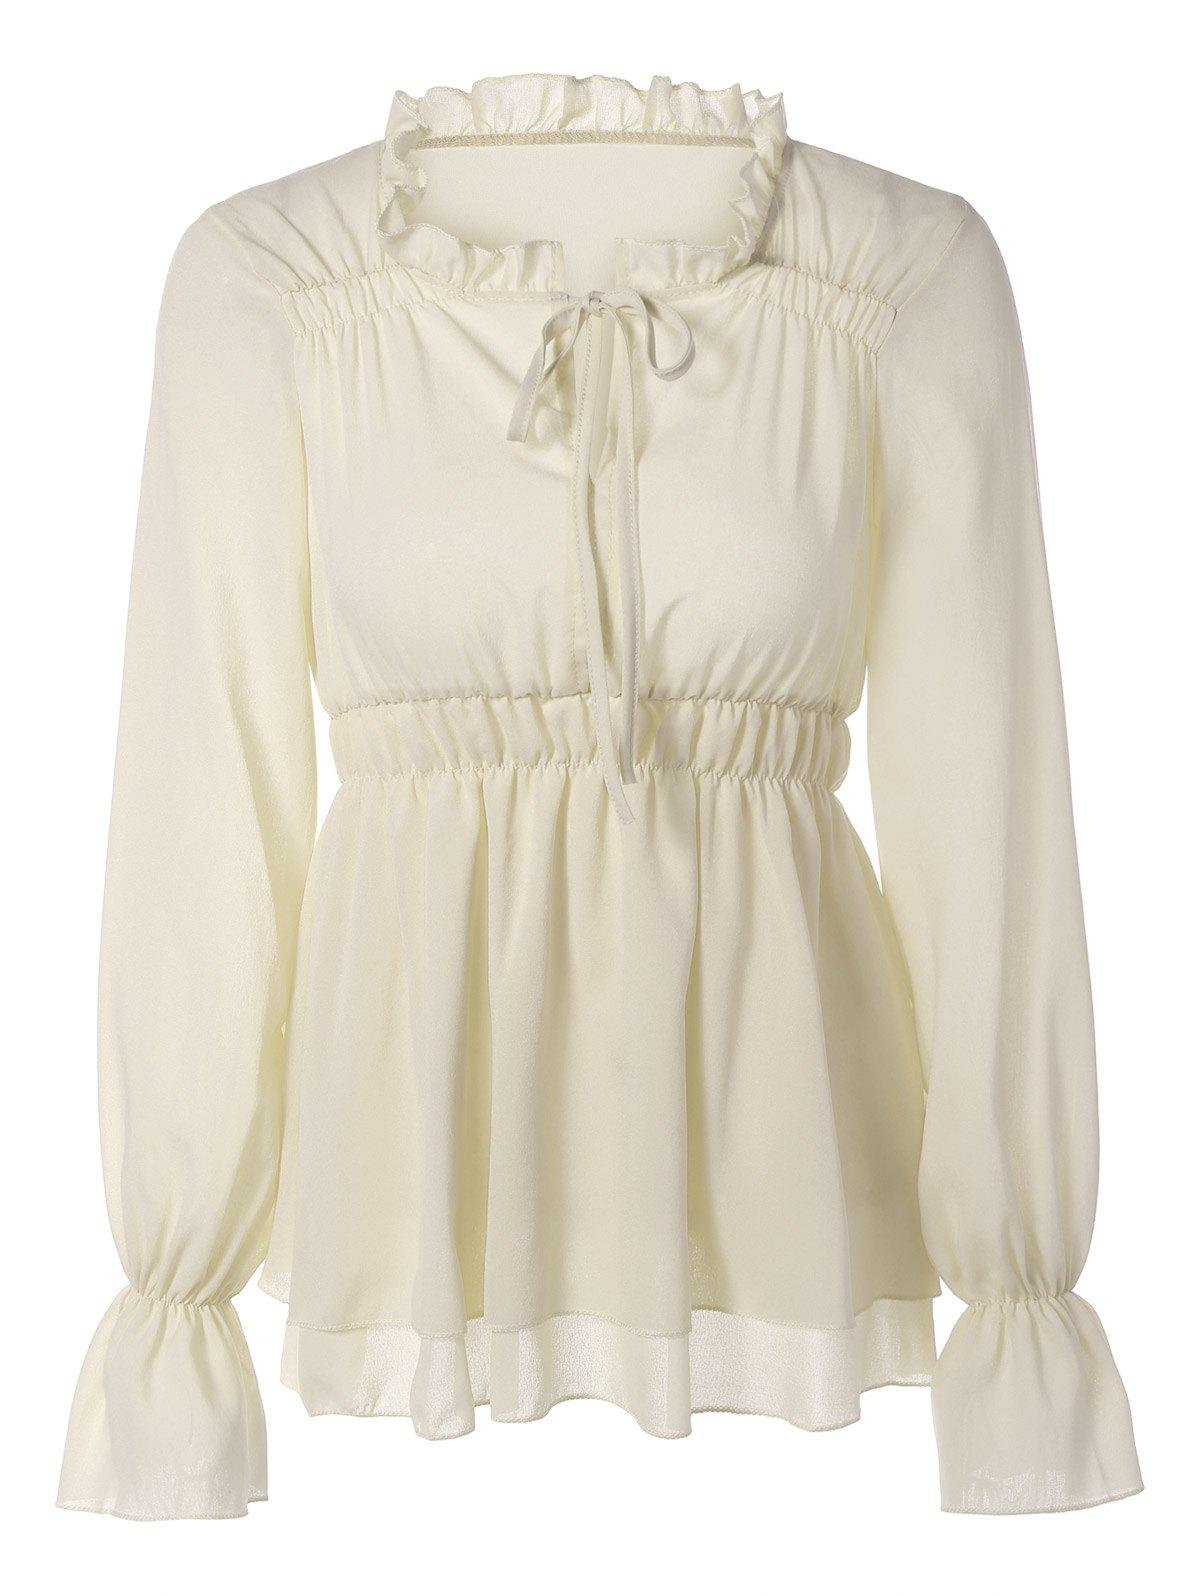 Puff Sleeves Tied-Up Ruffled Blouse - WHITE S